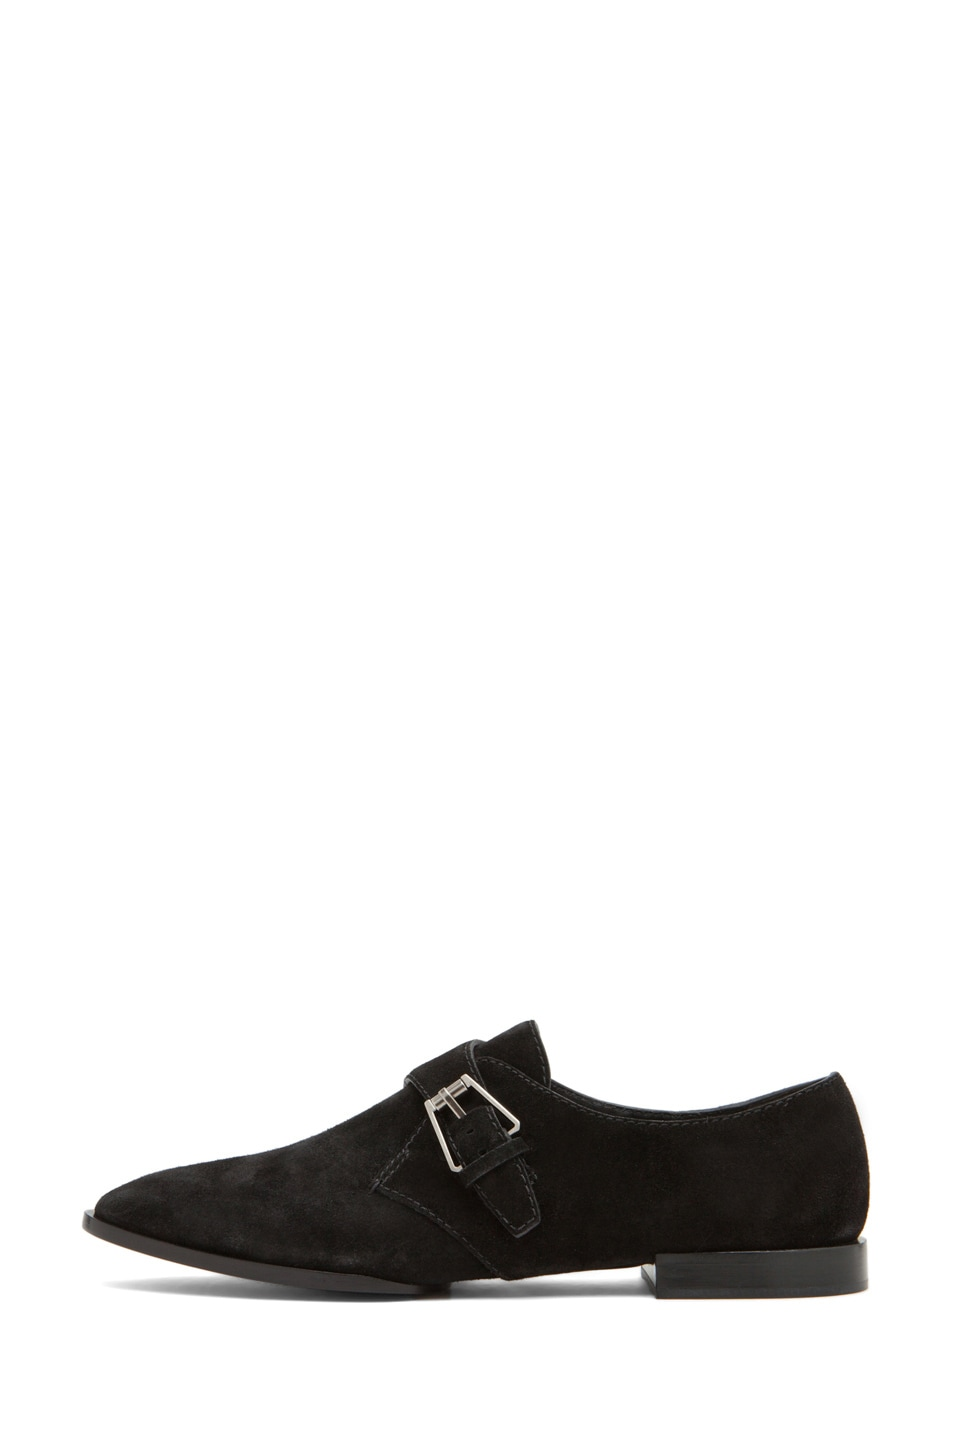 Image 1 of Alexander Wang Ruby Monk Strap Flat in Black